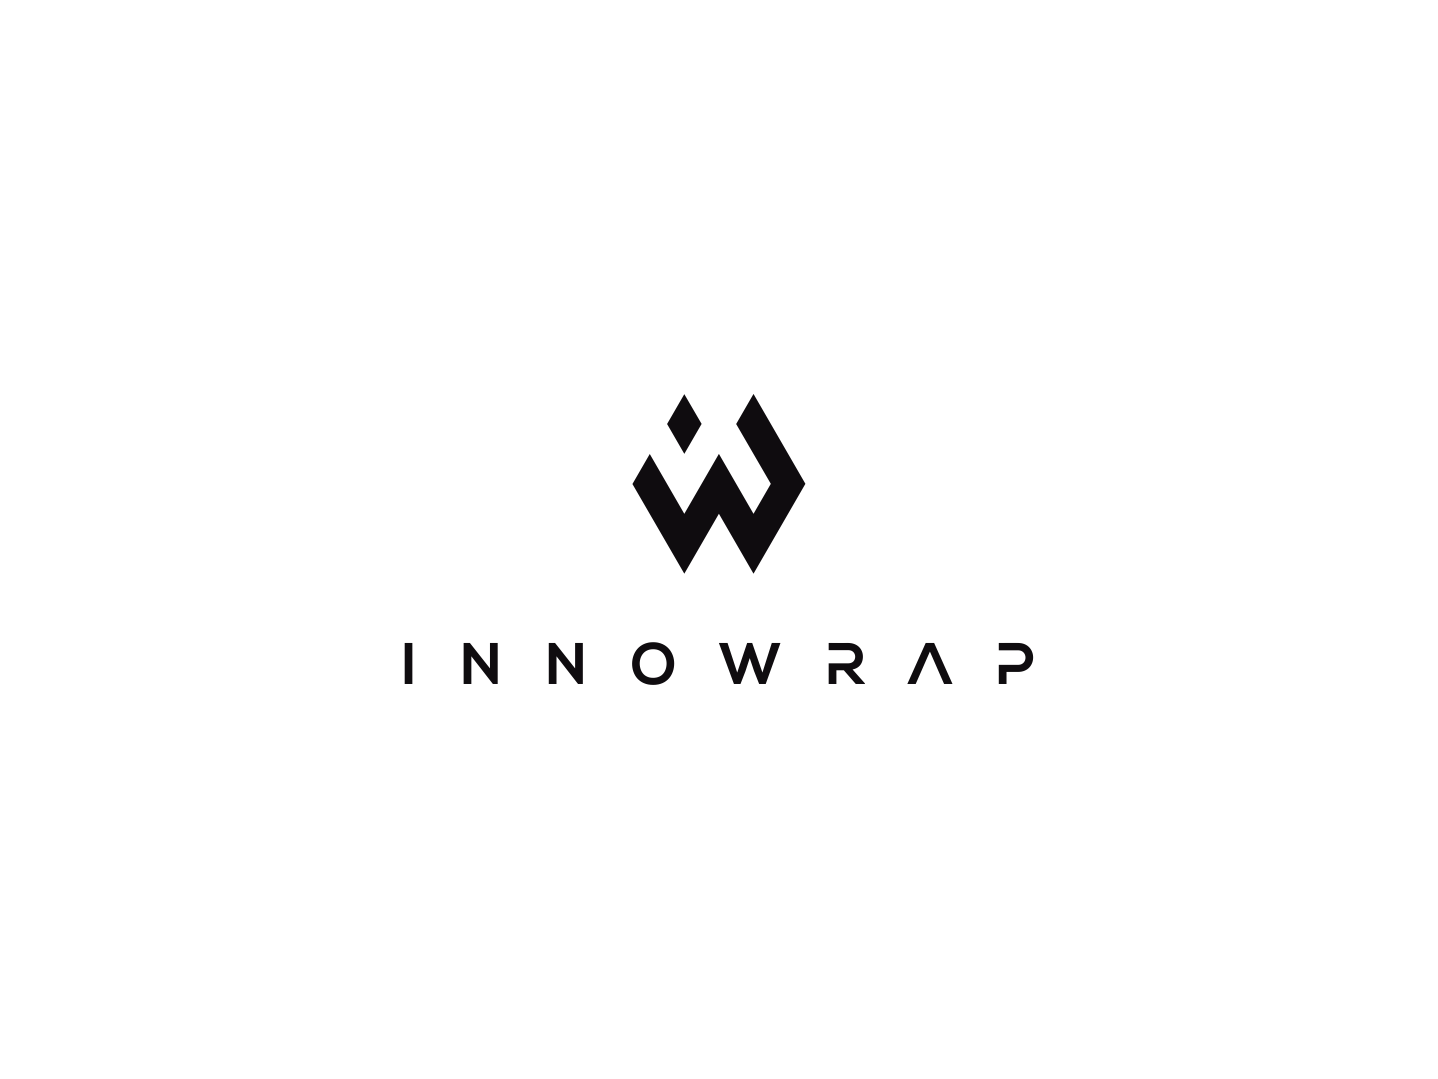 Inno Wrap solutions cloud initials branding design logo